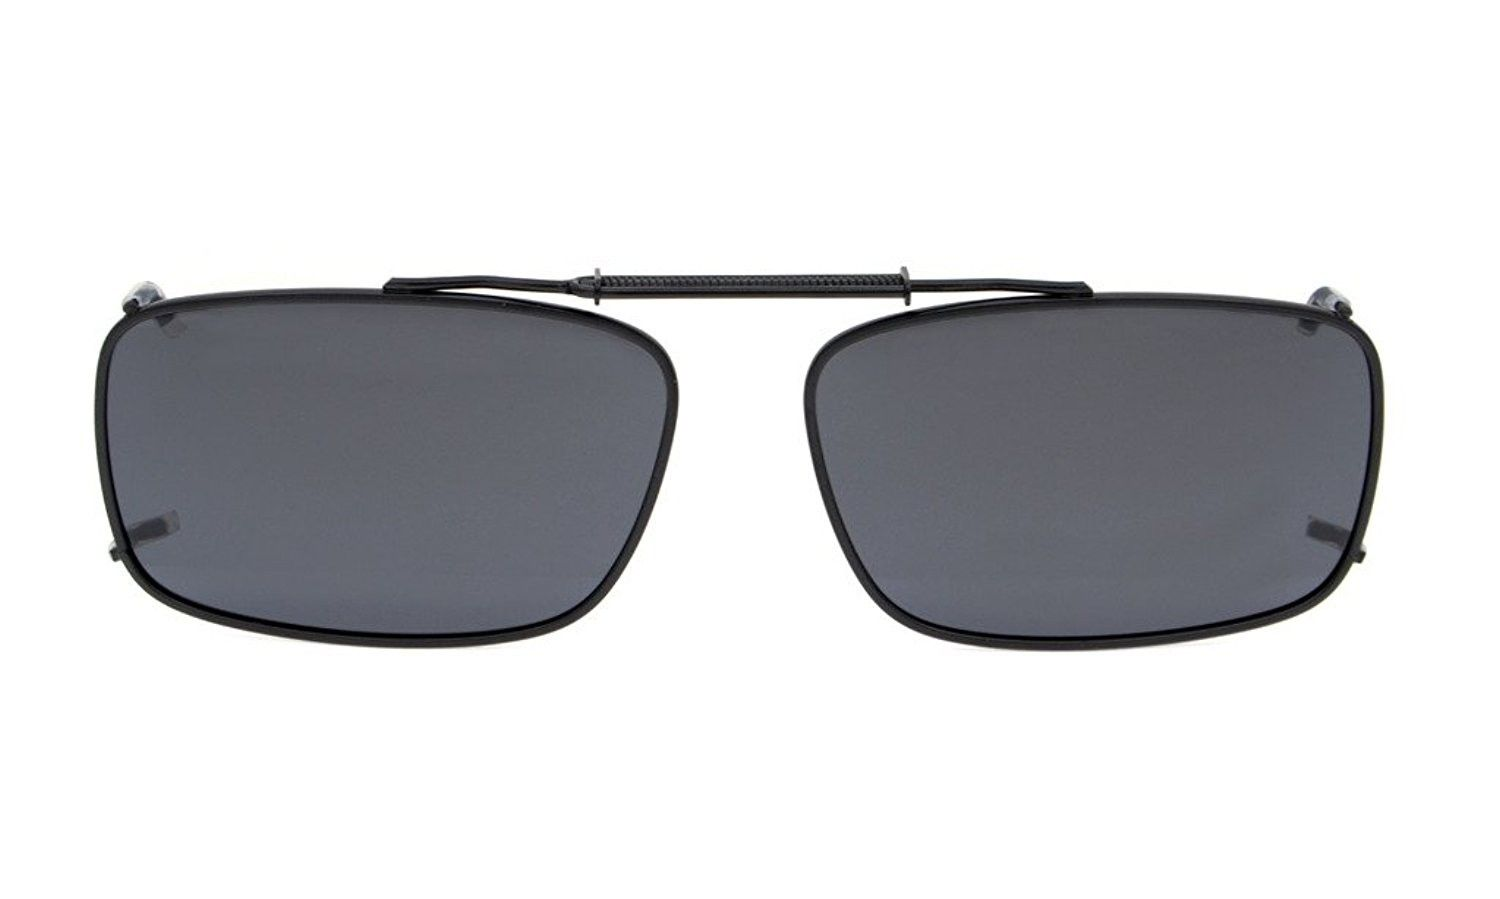 2ab689d0da Metal Frame Rim Polarized Lens Clip On Sunglasses 2 1 8